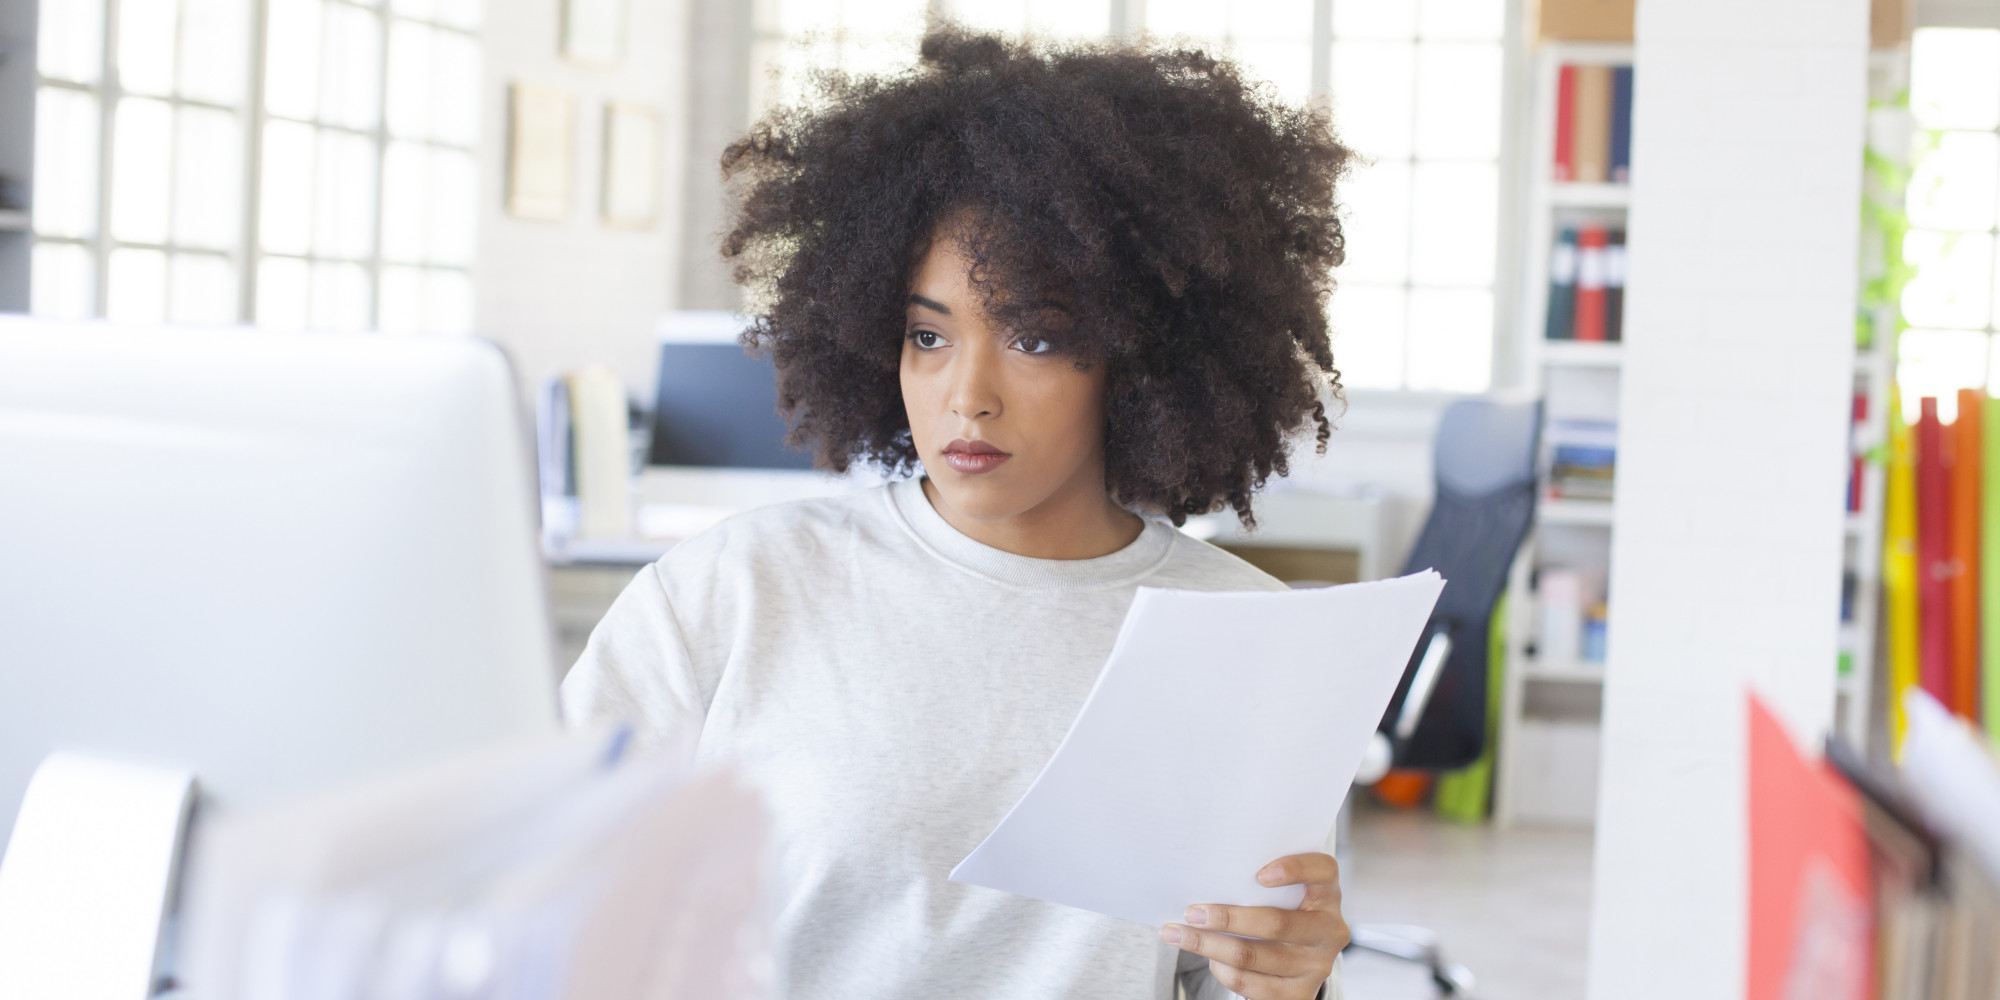 The Harsh Reality Of Being A Black Woman In The Workplace